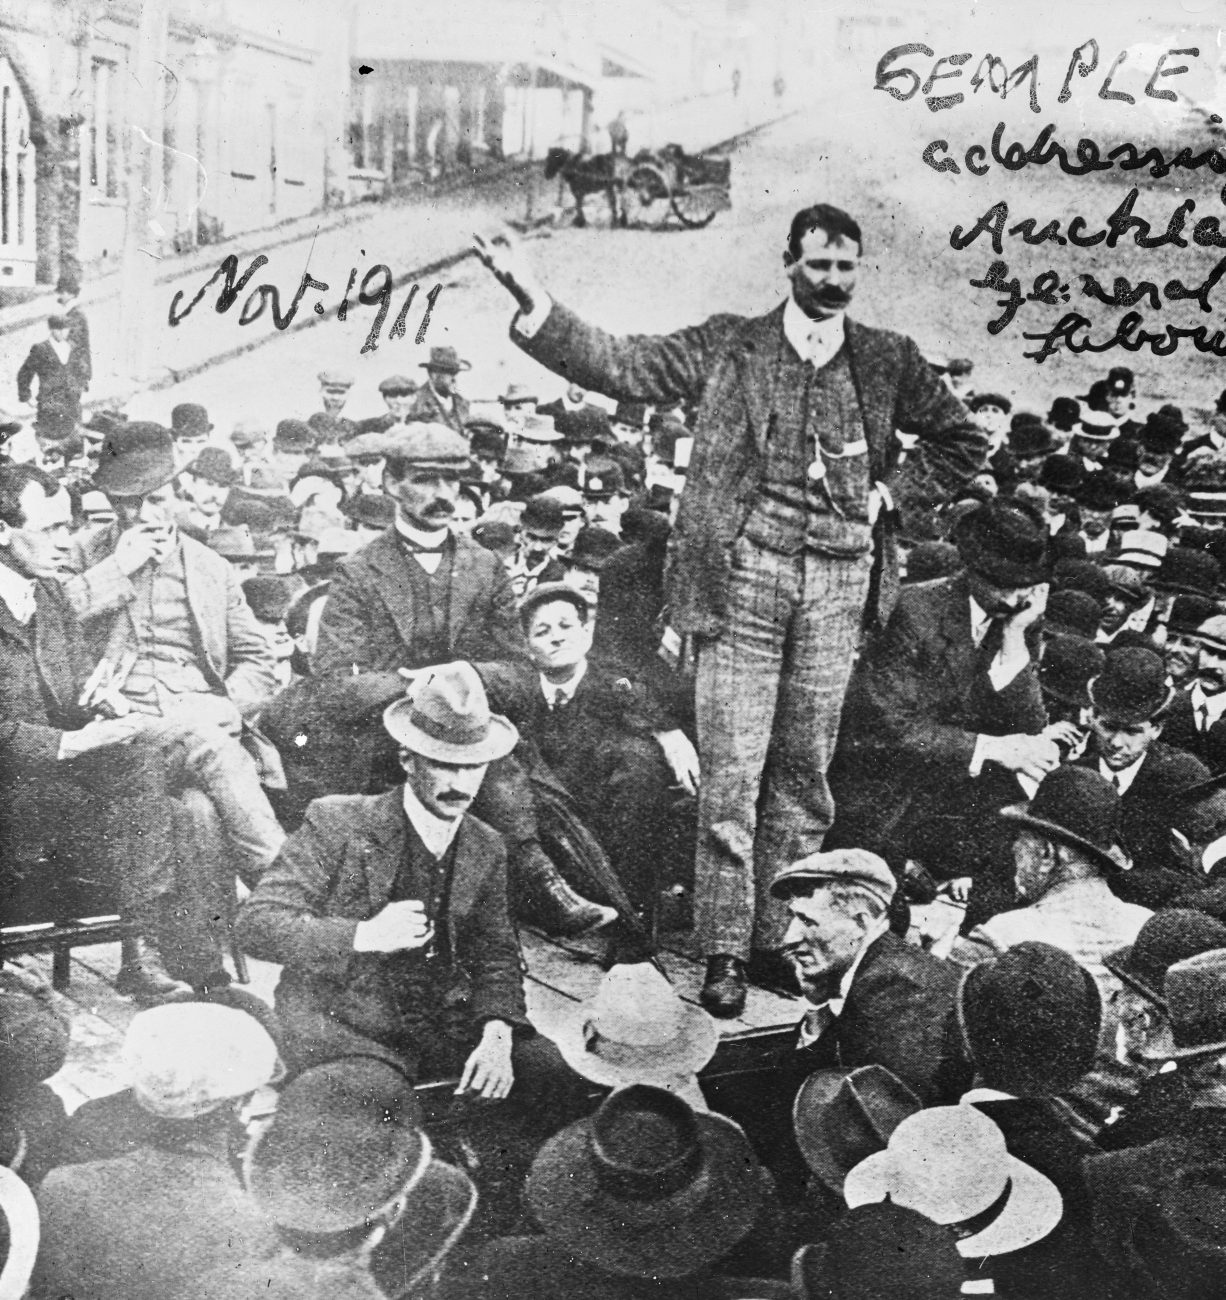 Semple, photographed in Auckland preaching the unionist gospel, later became Minister of Public Works in the first Labour government.